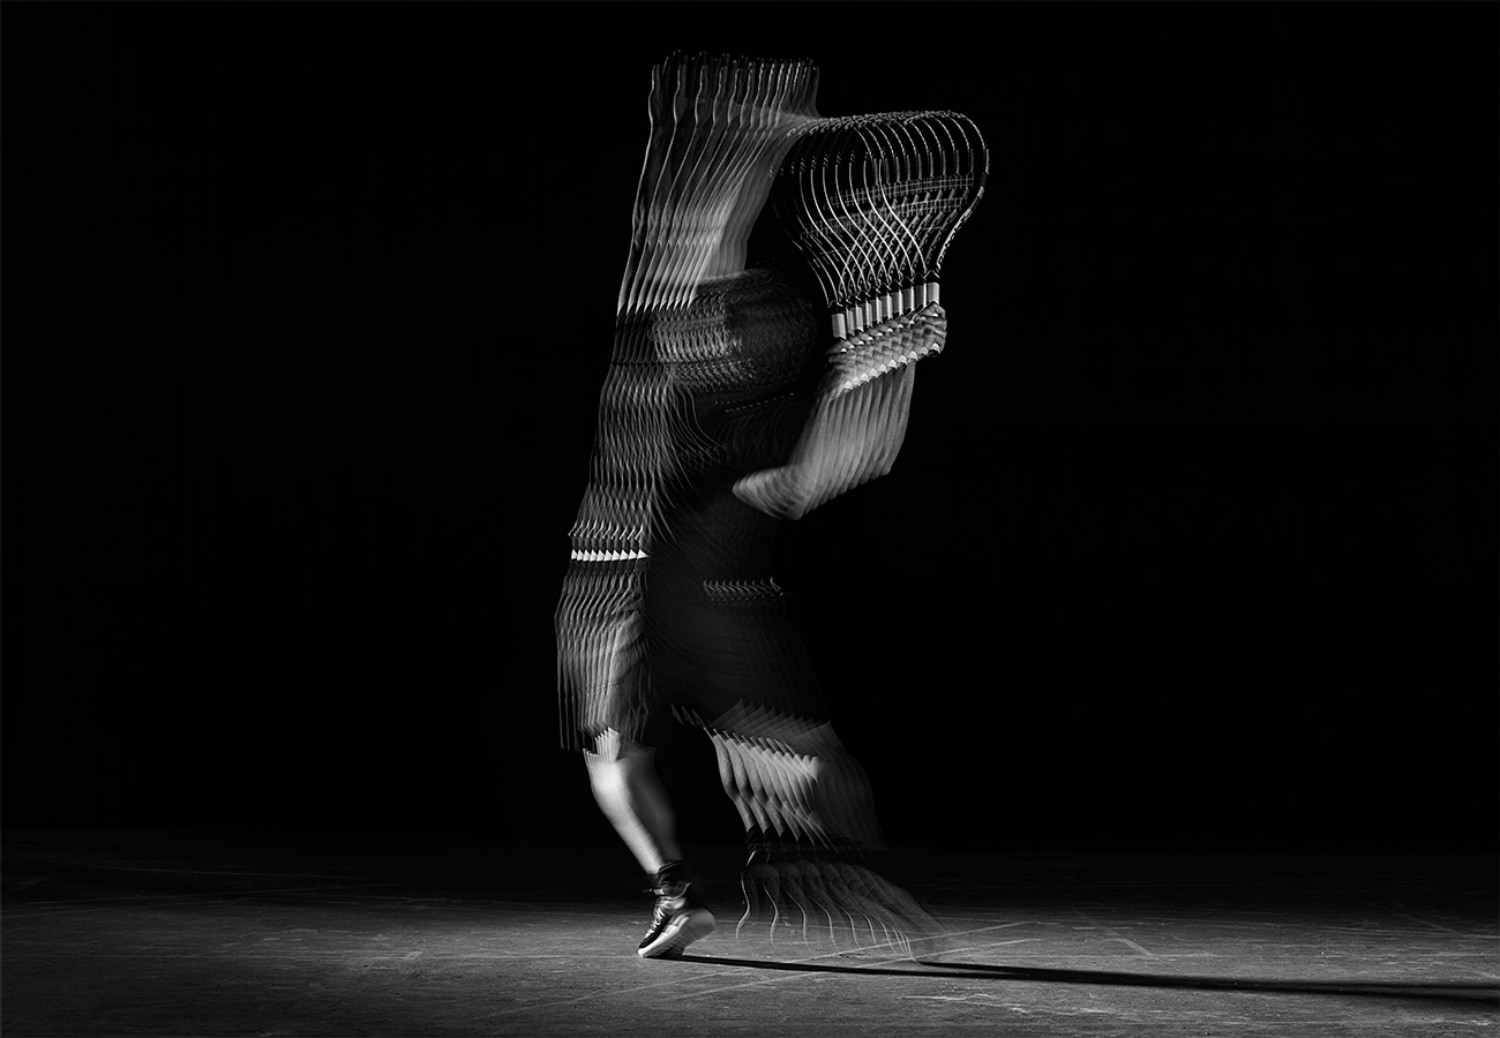 jean yves lemoigne photography black white motion tennis blurry sport